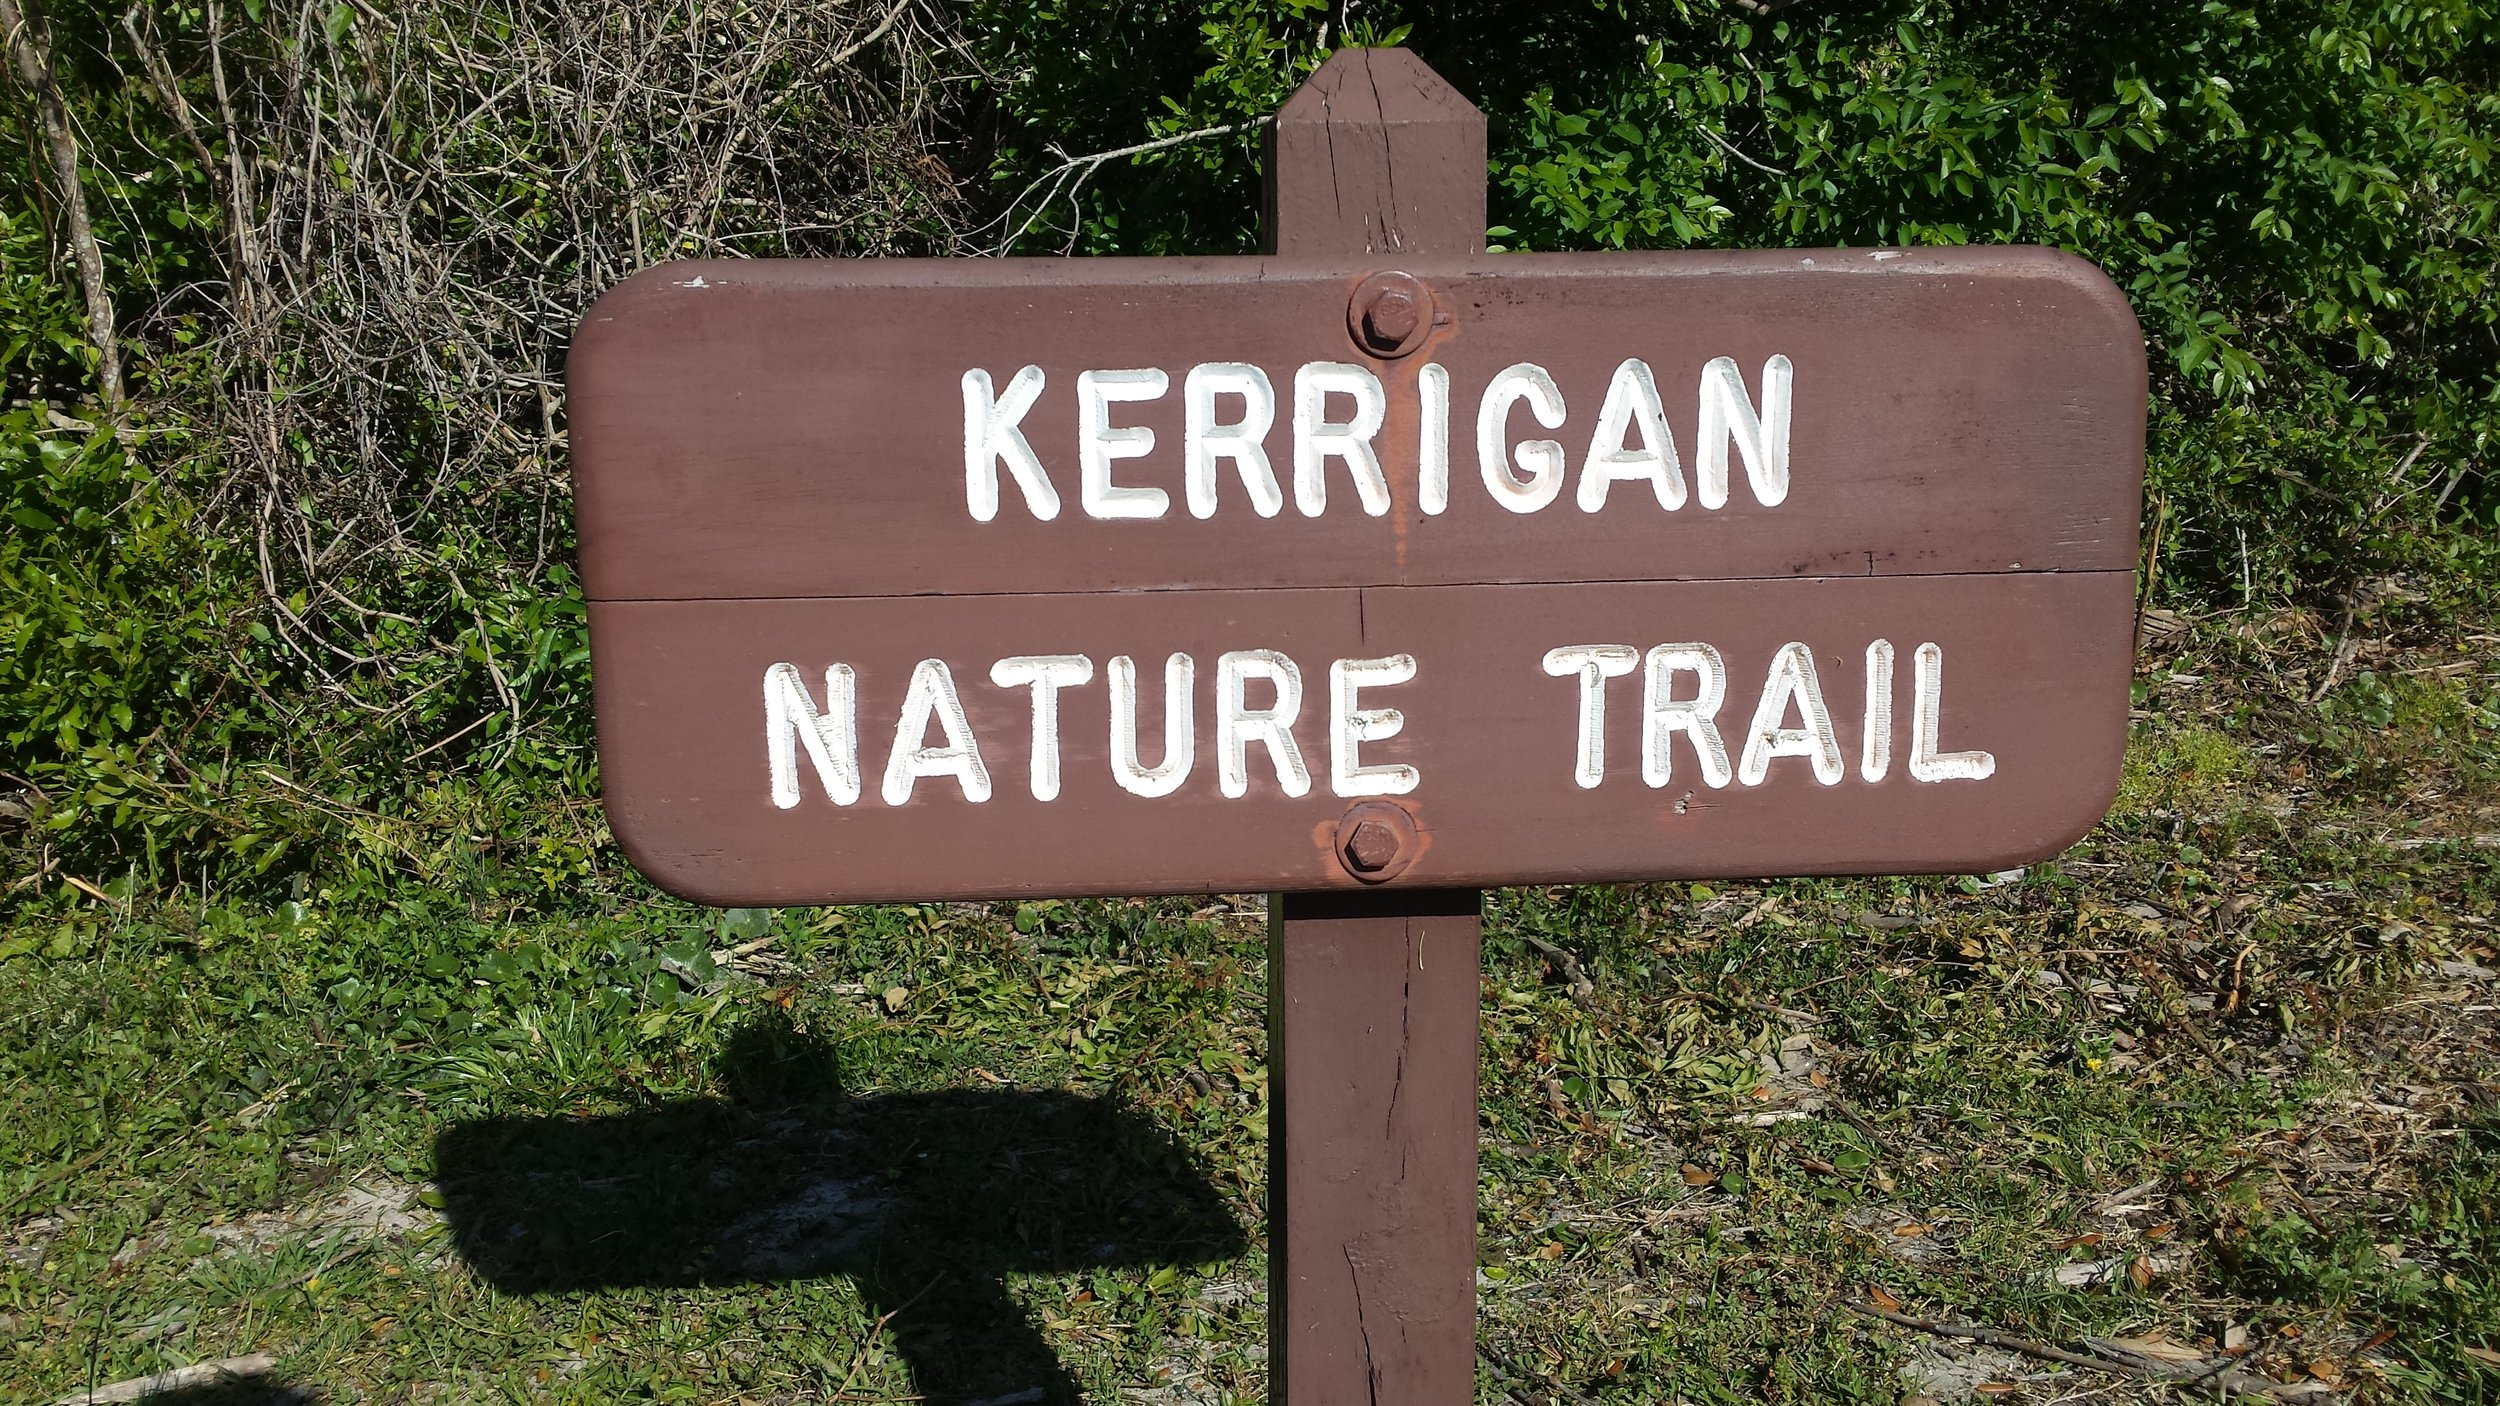 All three trials are easy hiking. We enjoyed the observation platform on the Kerrigan Trail.